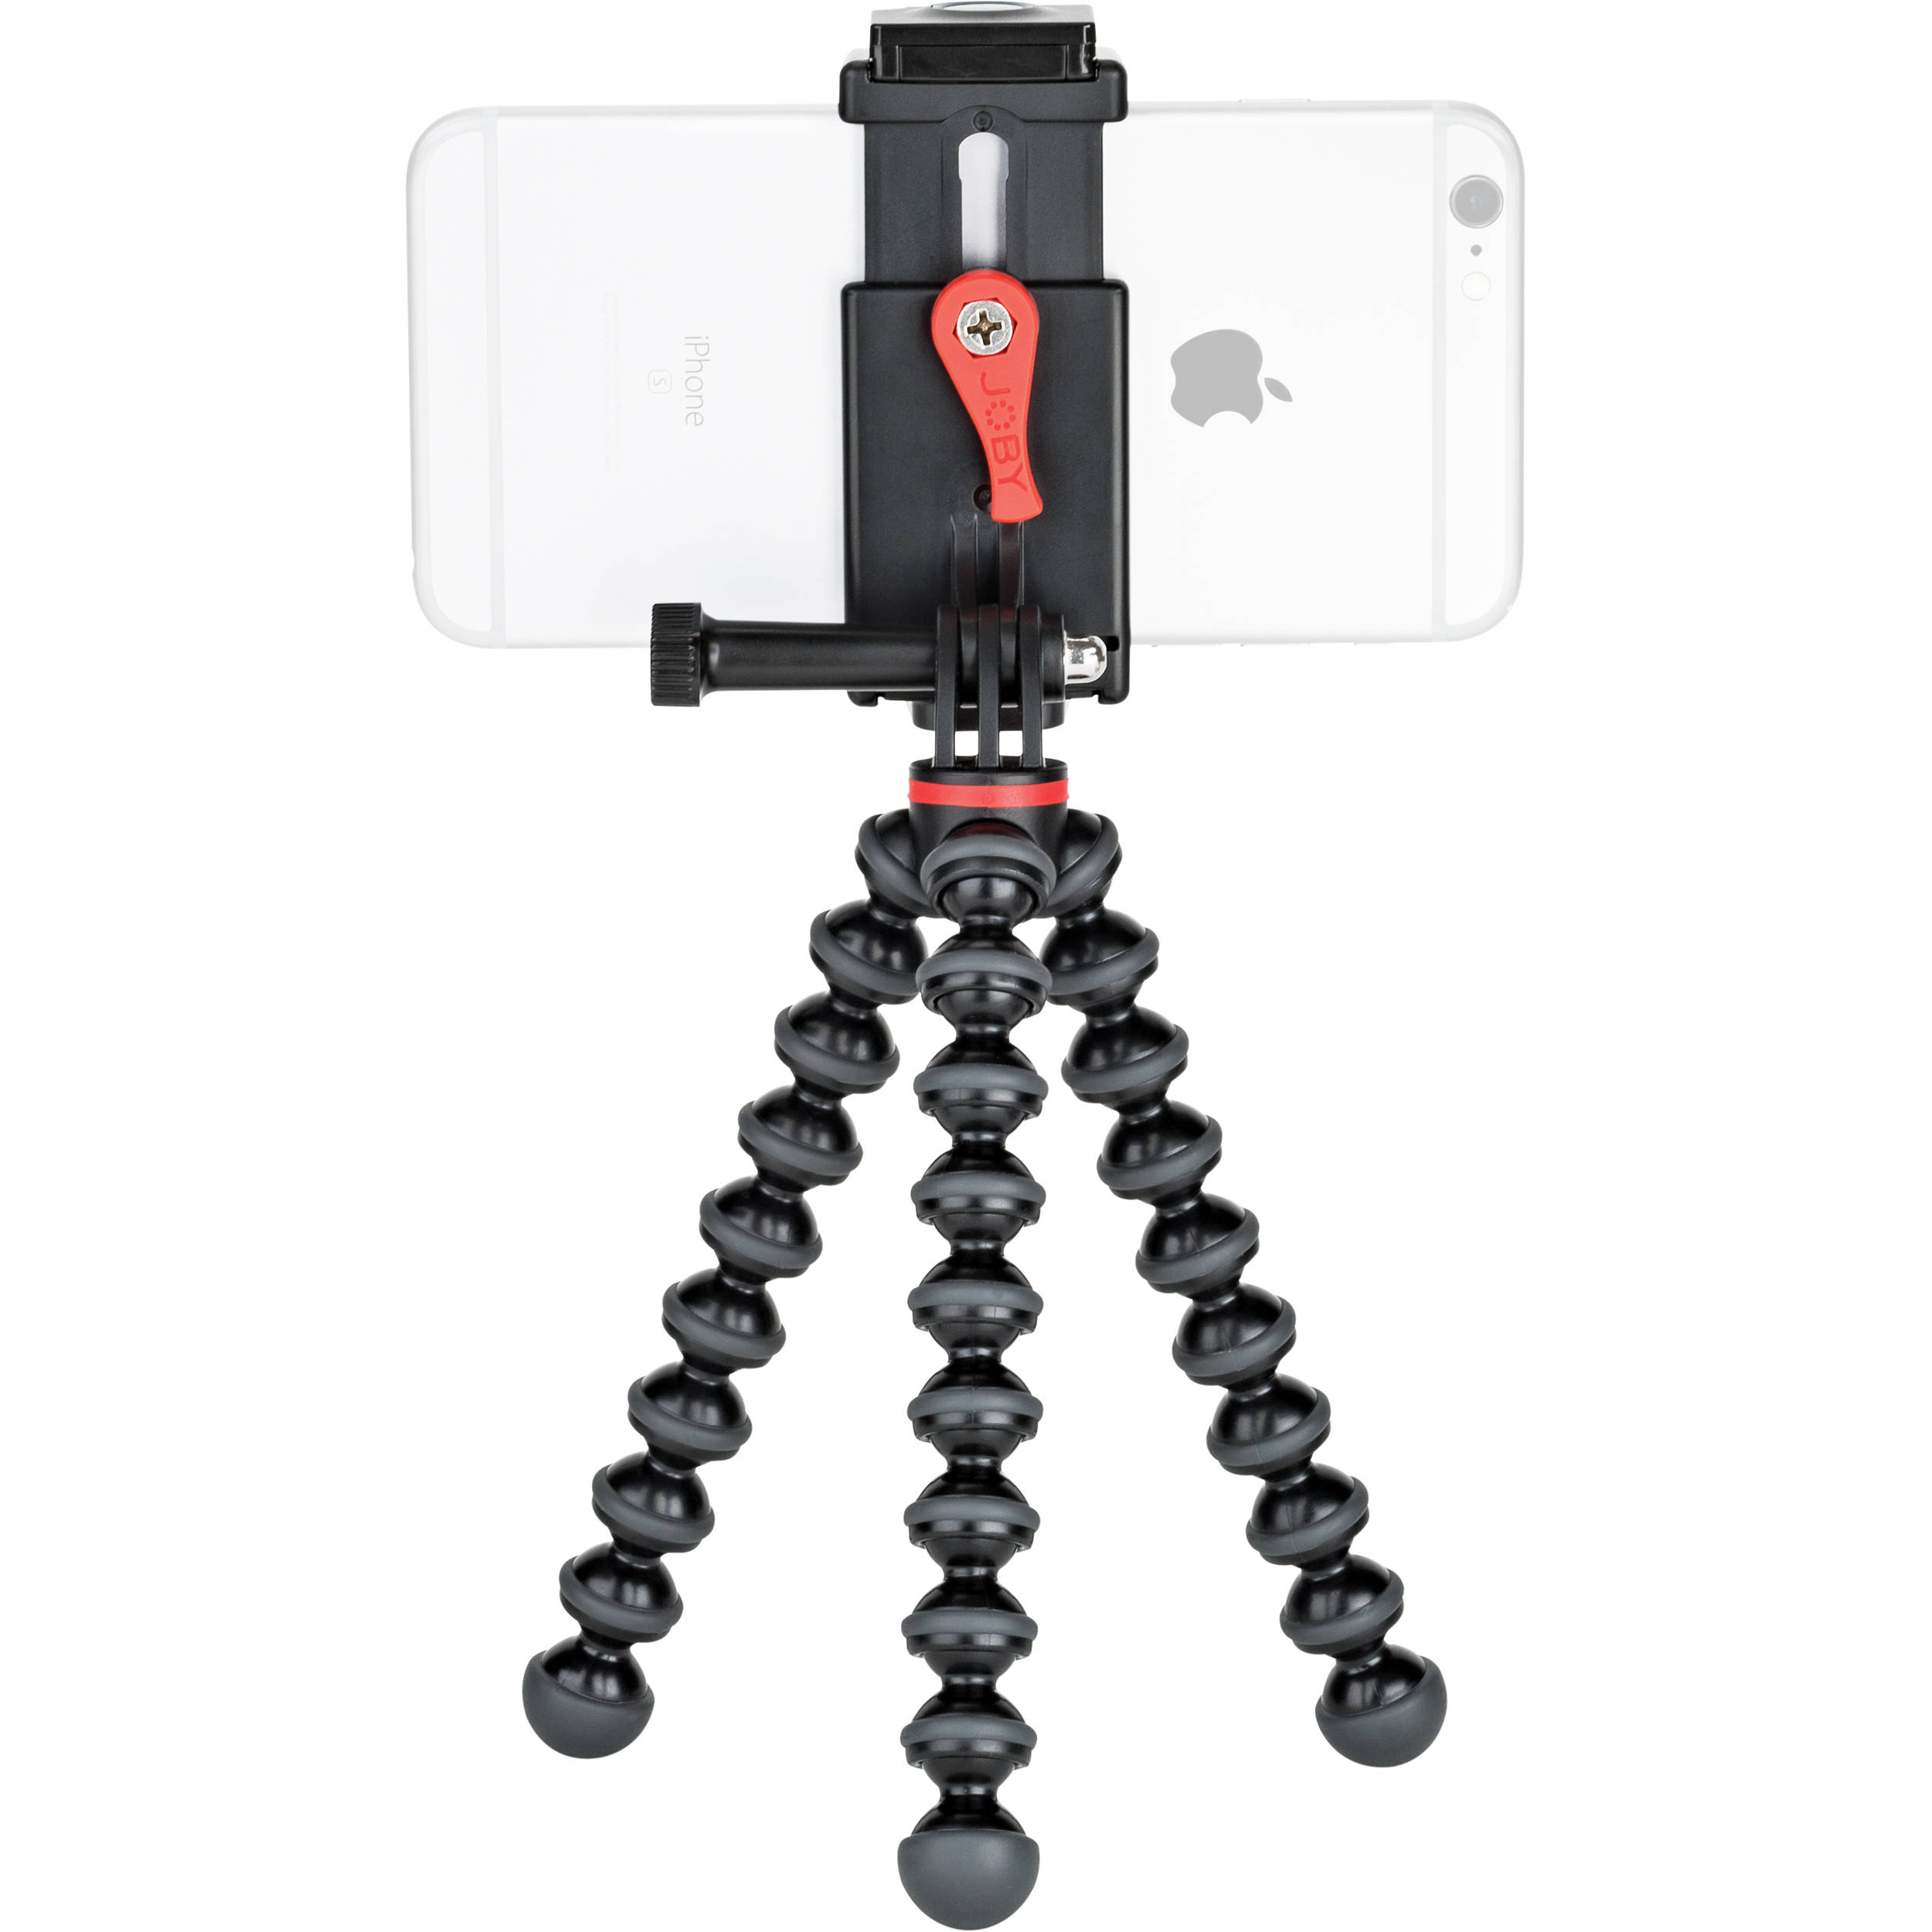 Joby Tabletop Tripods Bh Photo Video Gorilla Pod 3k Kit Griptight Gorillapod Action Stand With Mount For Smartphones